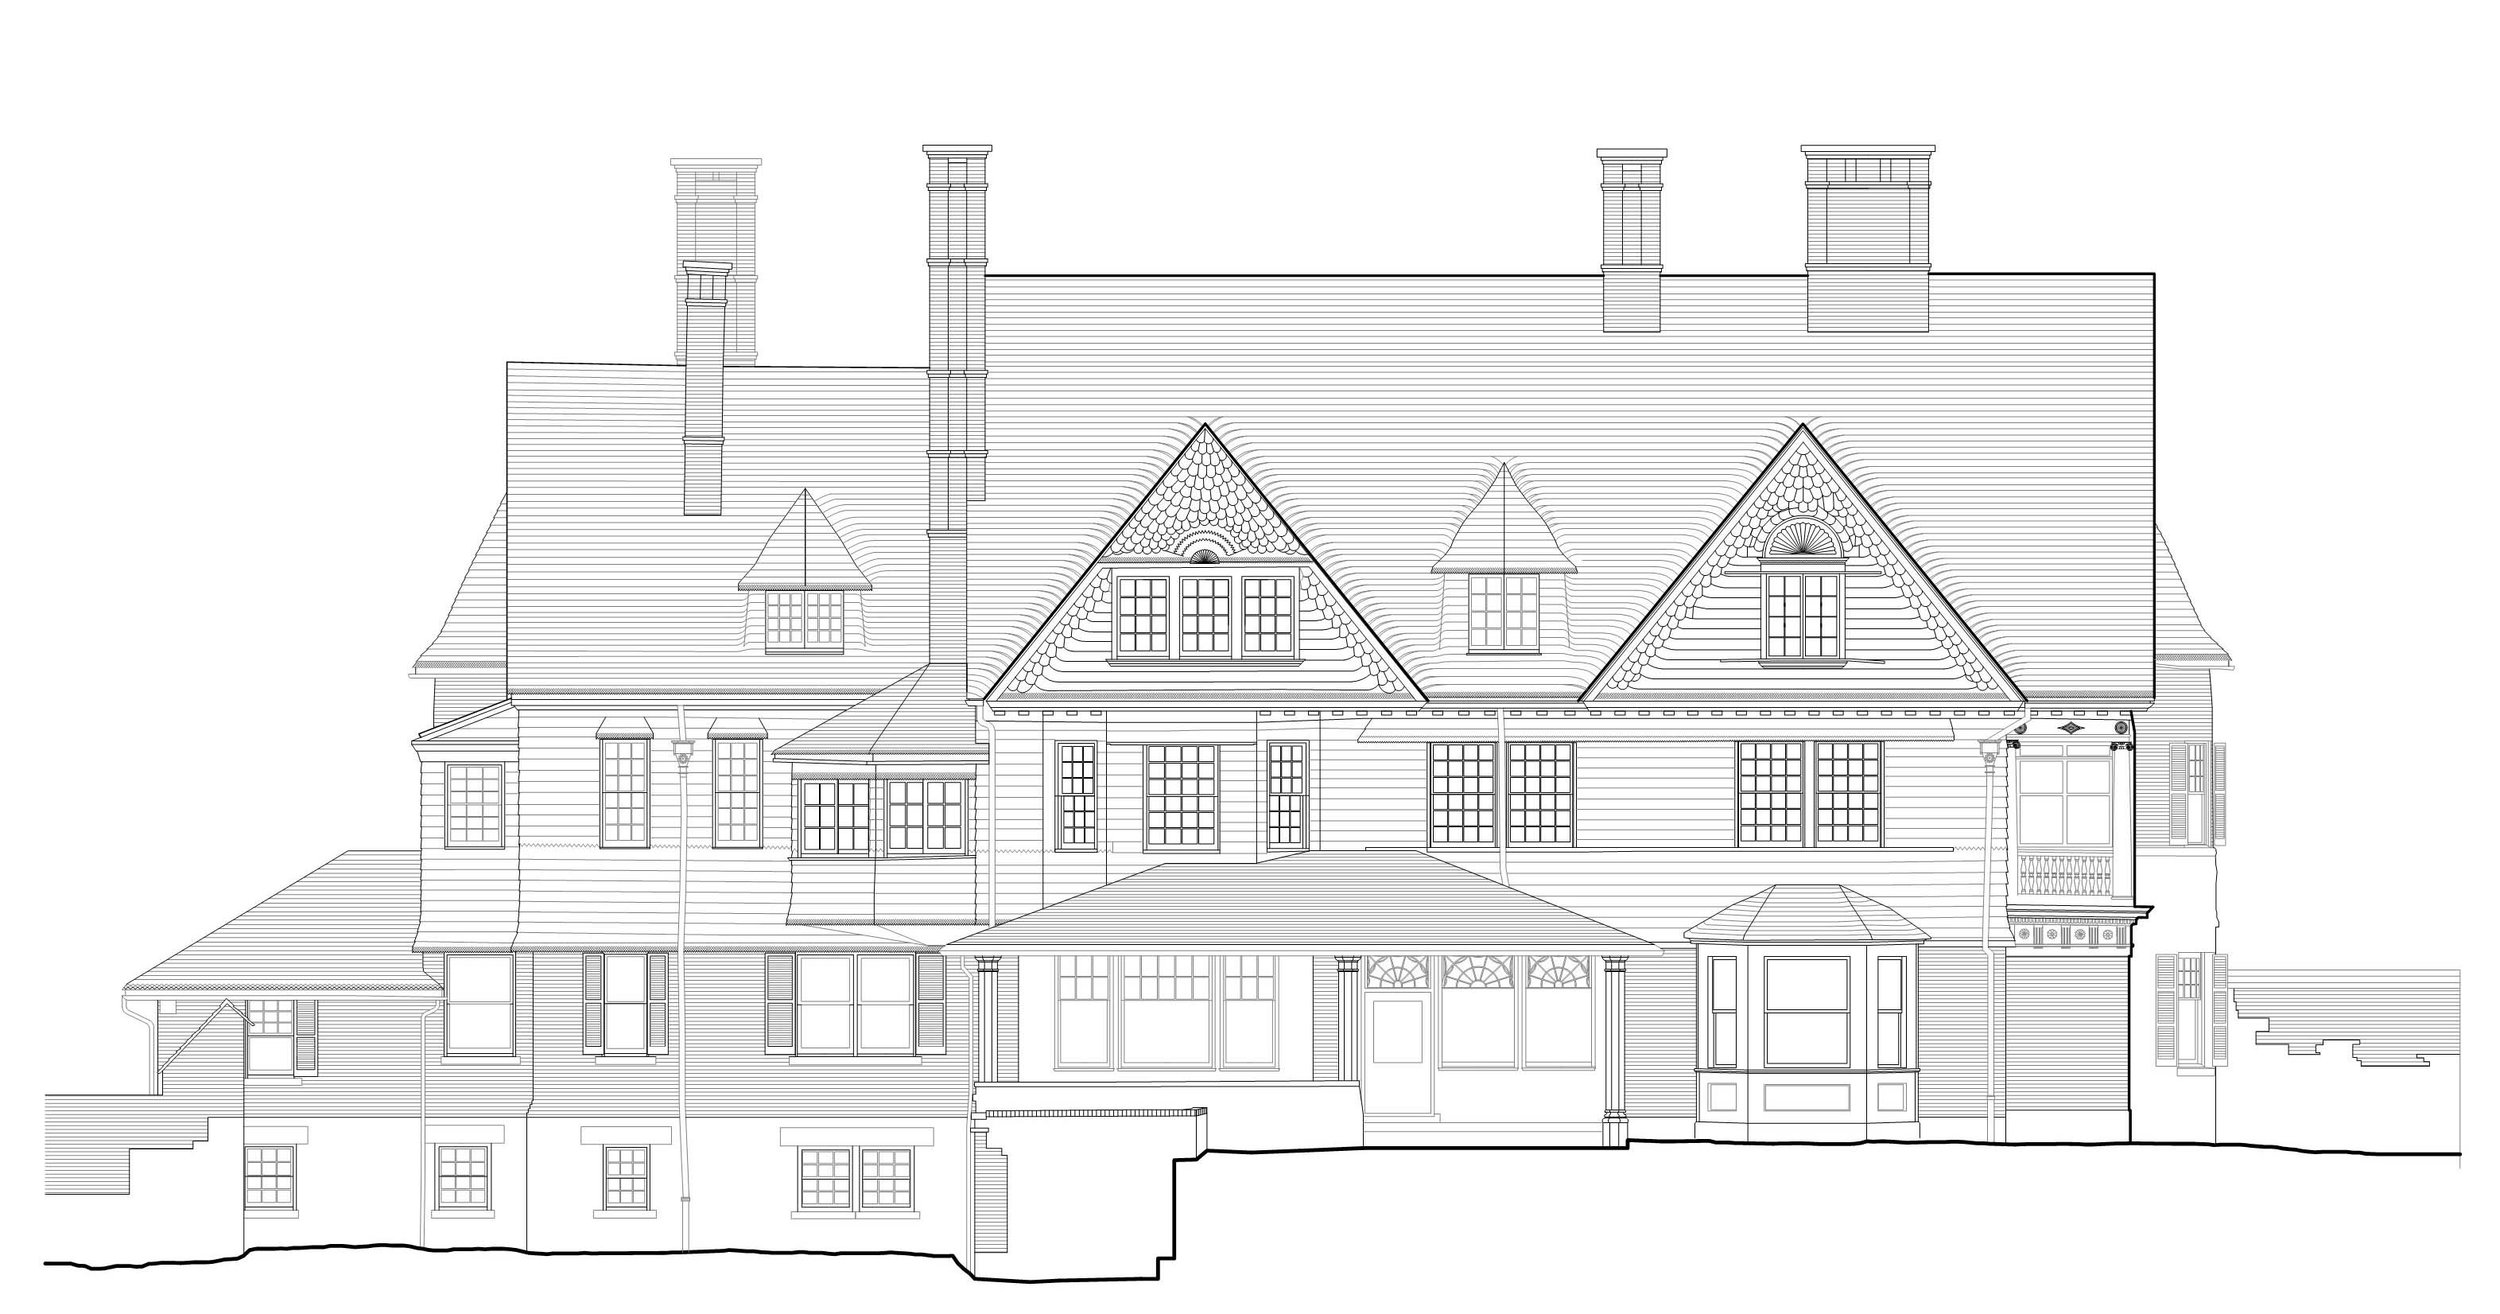 Final elevation drawing